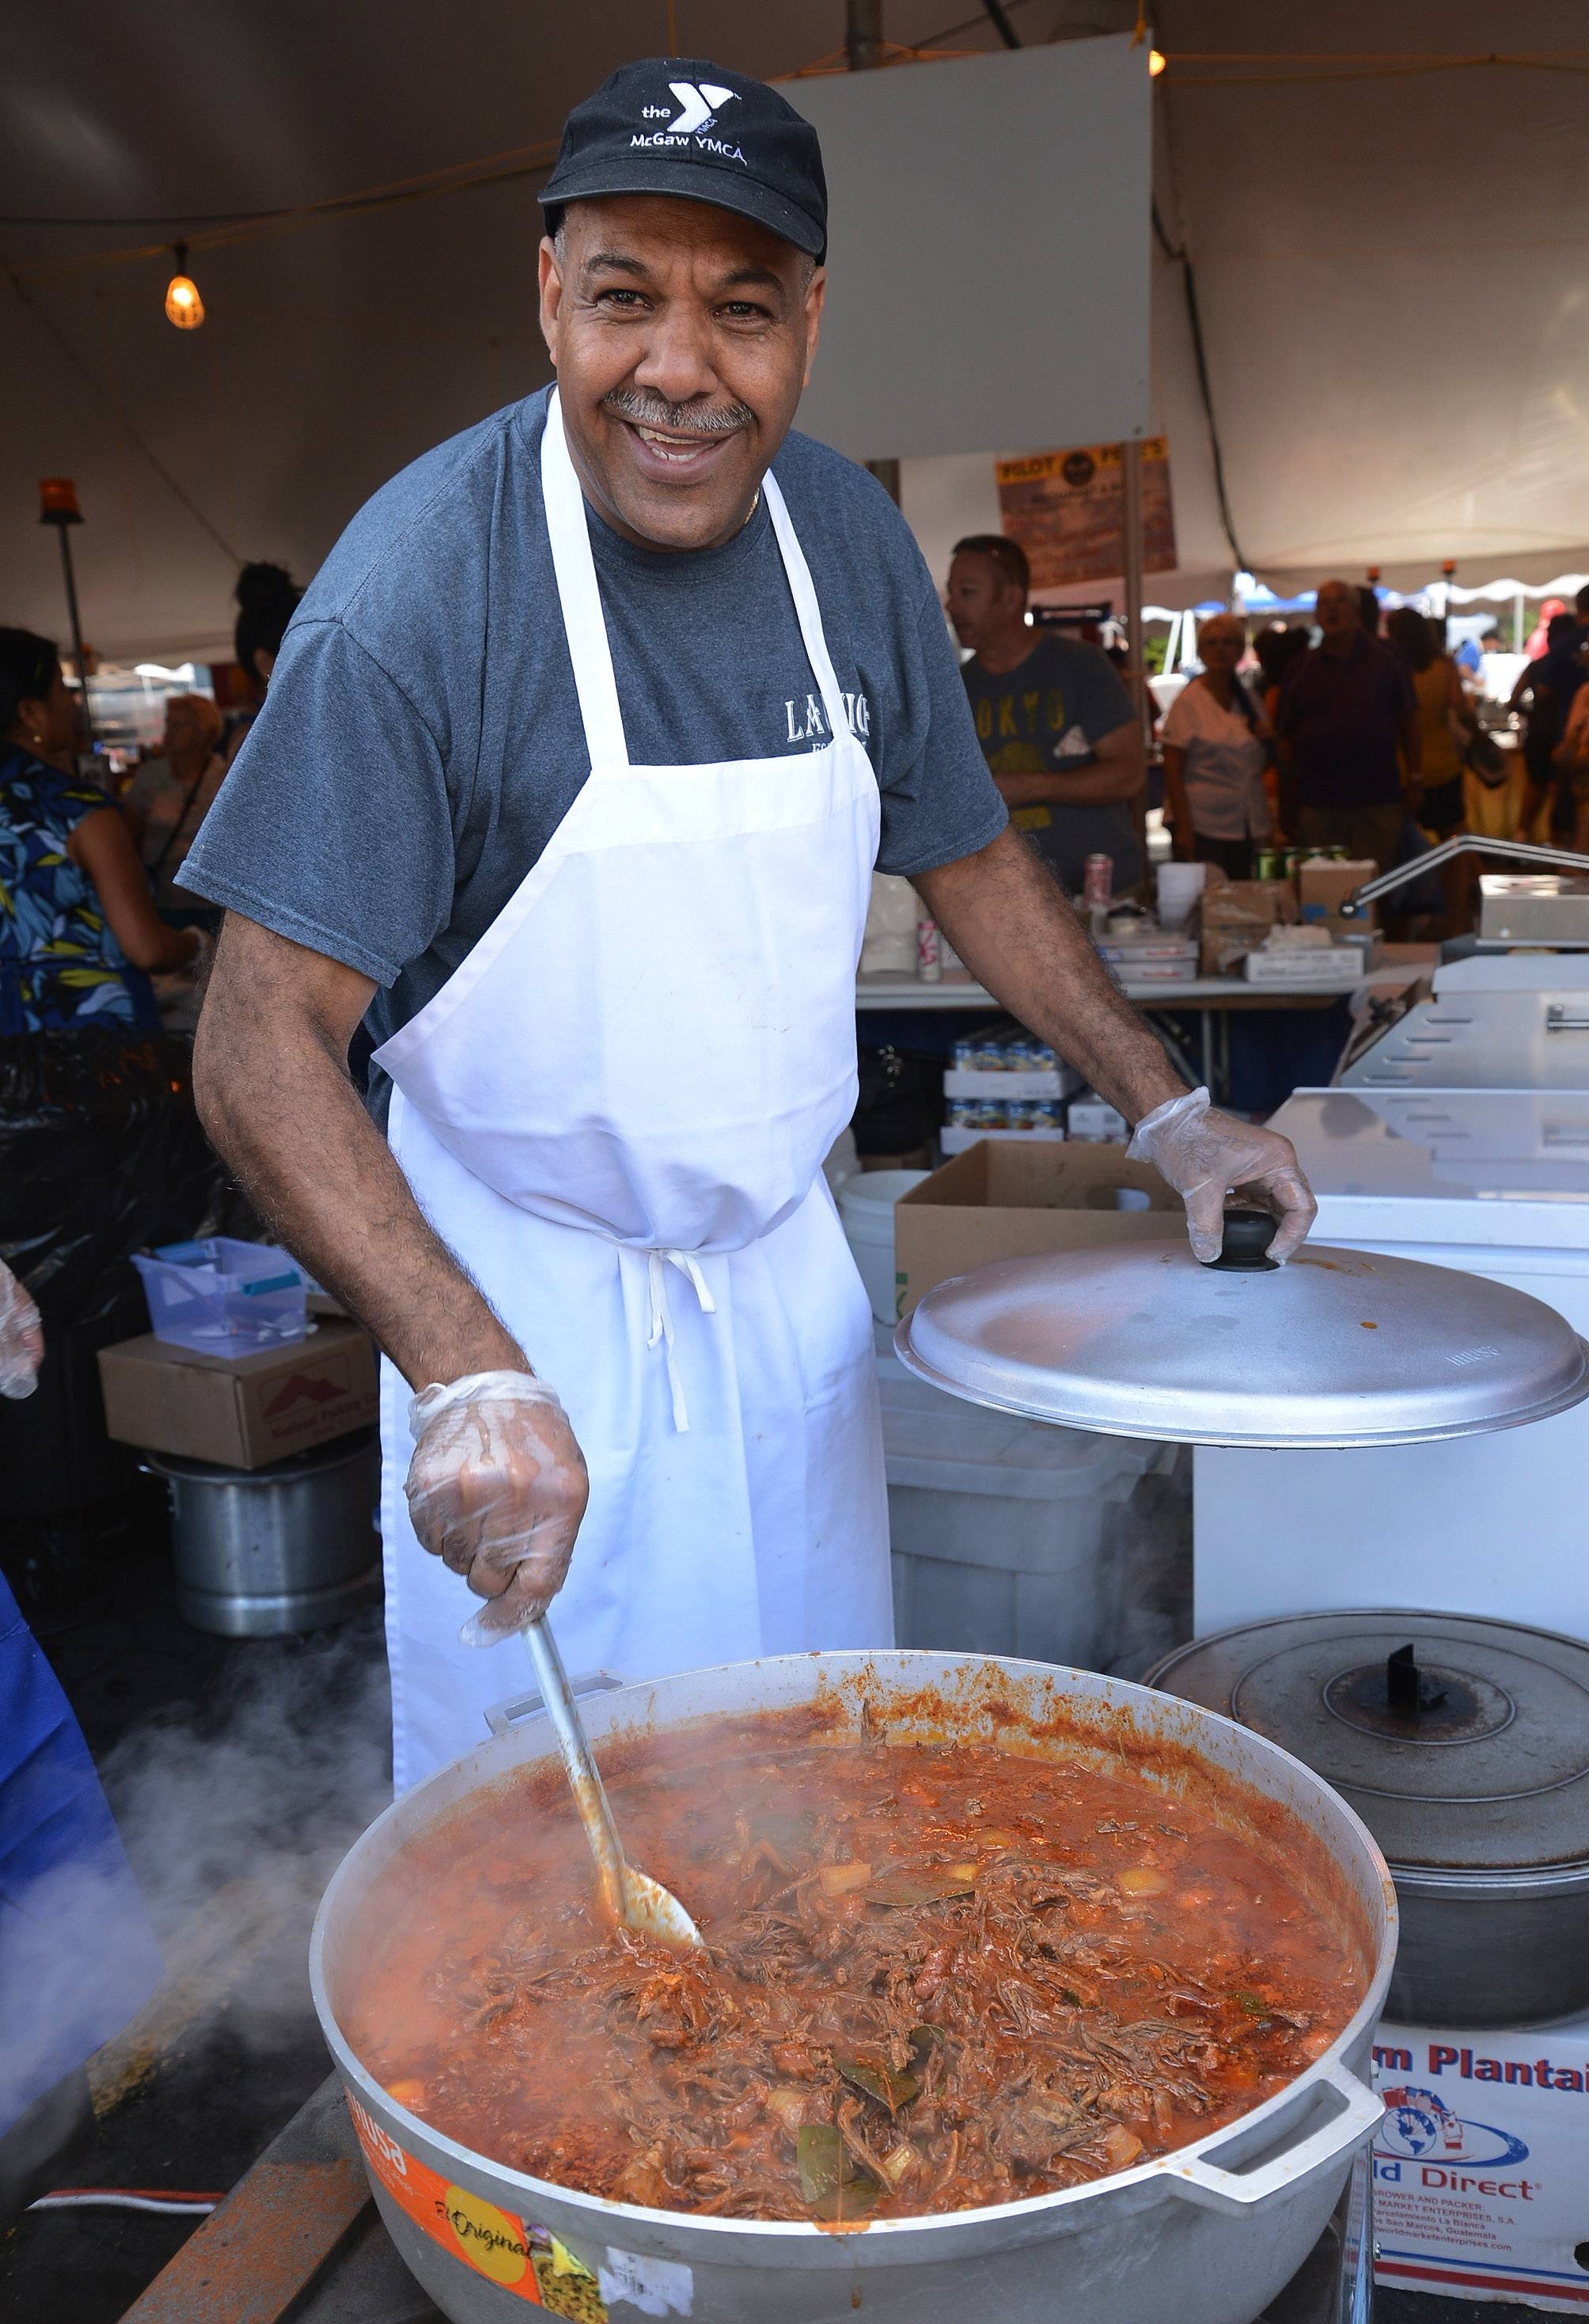 Jorge Reyes of La Unica Cafe stirs up a batch of ropa vieja on the first day of Schaumburg's 44th annual Septemberfest.